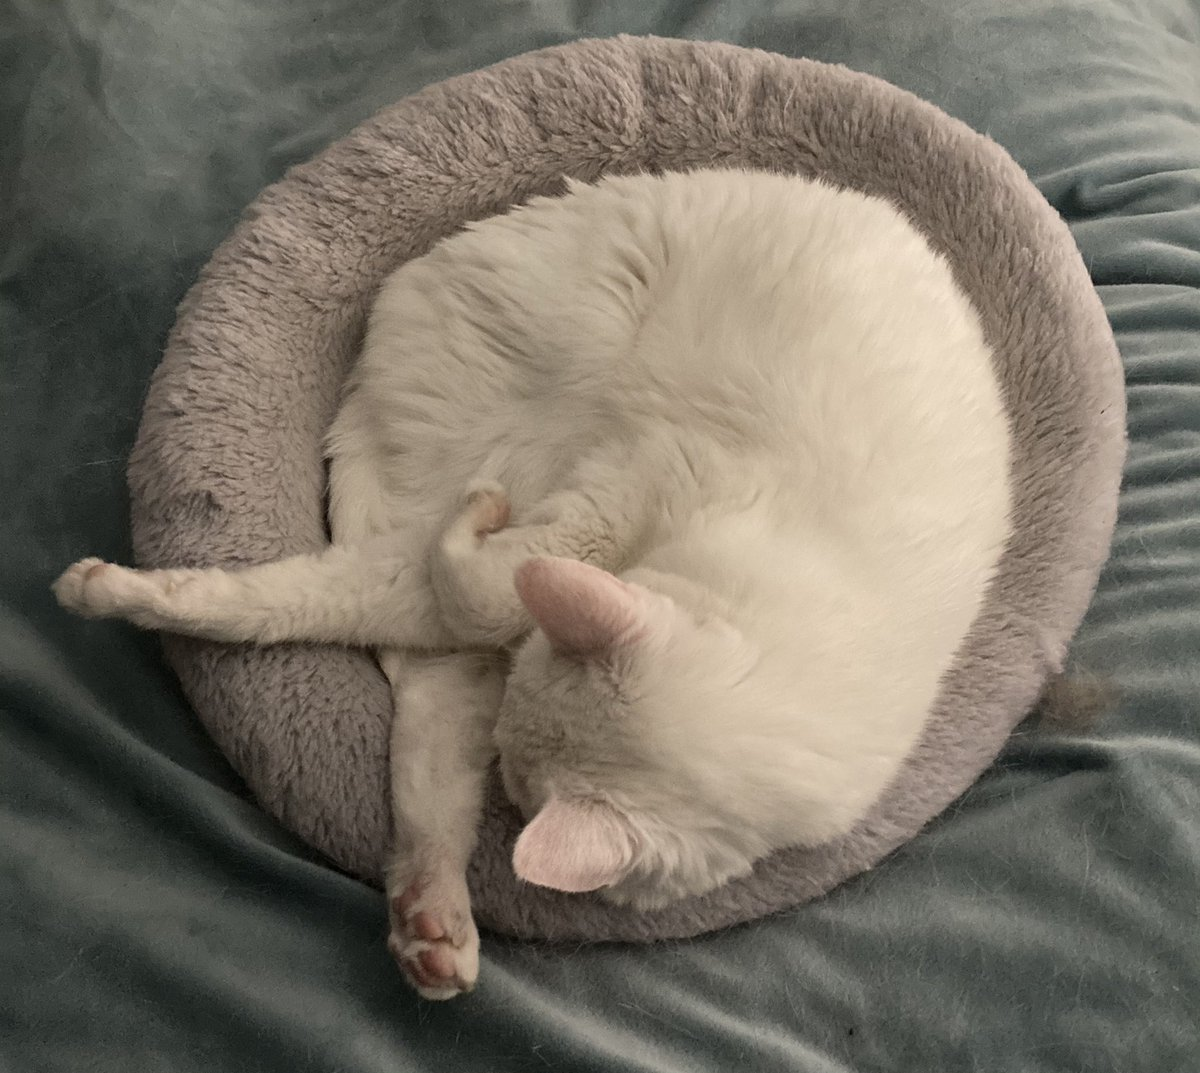 @kedi_sofa My Sasha and sister Ninja love their donut beds. They used to both squeeze into one but they've been feuding lately. Happy #Caturday! #CatsOfTwitter